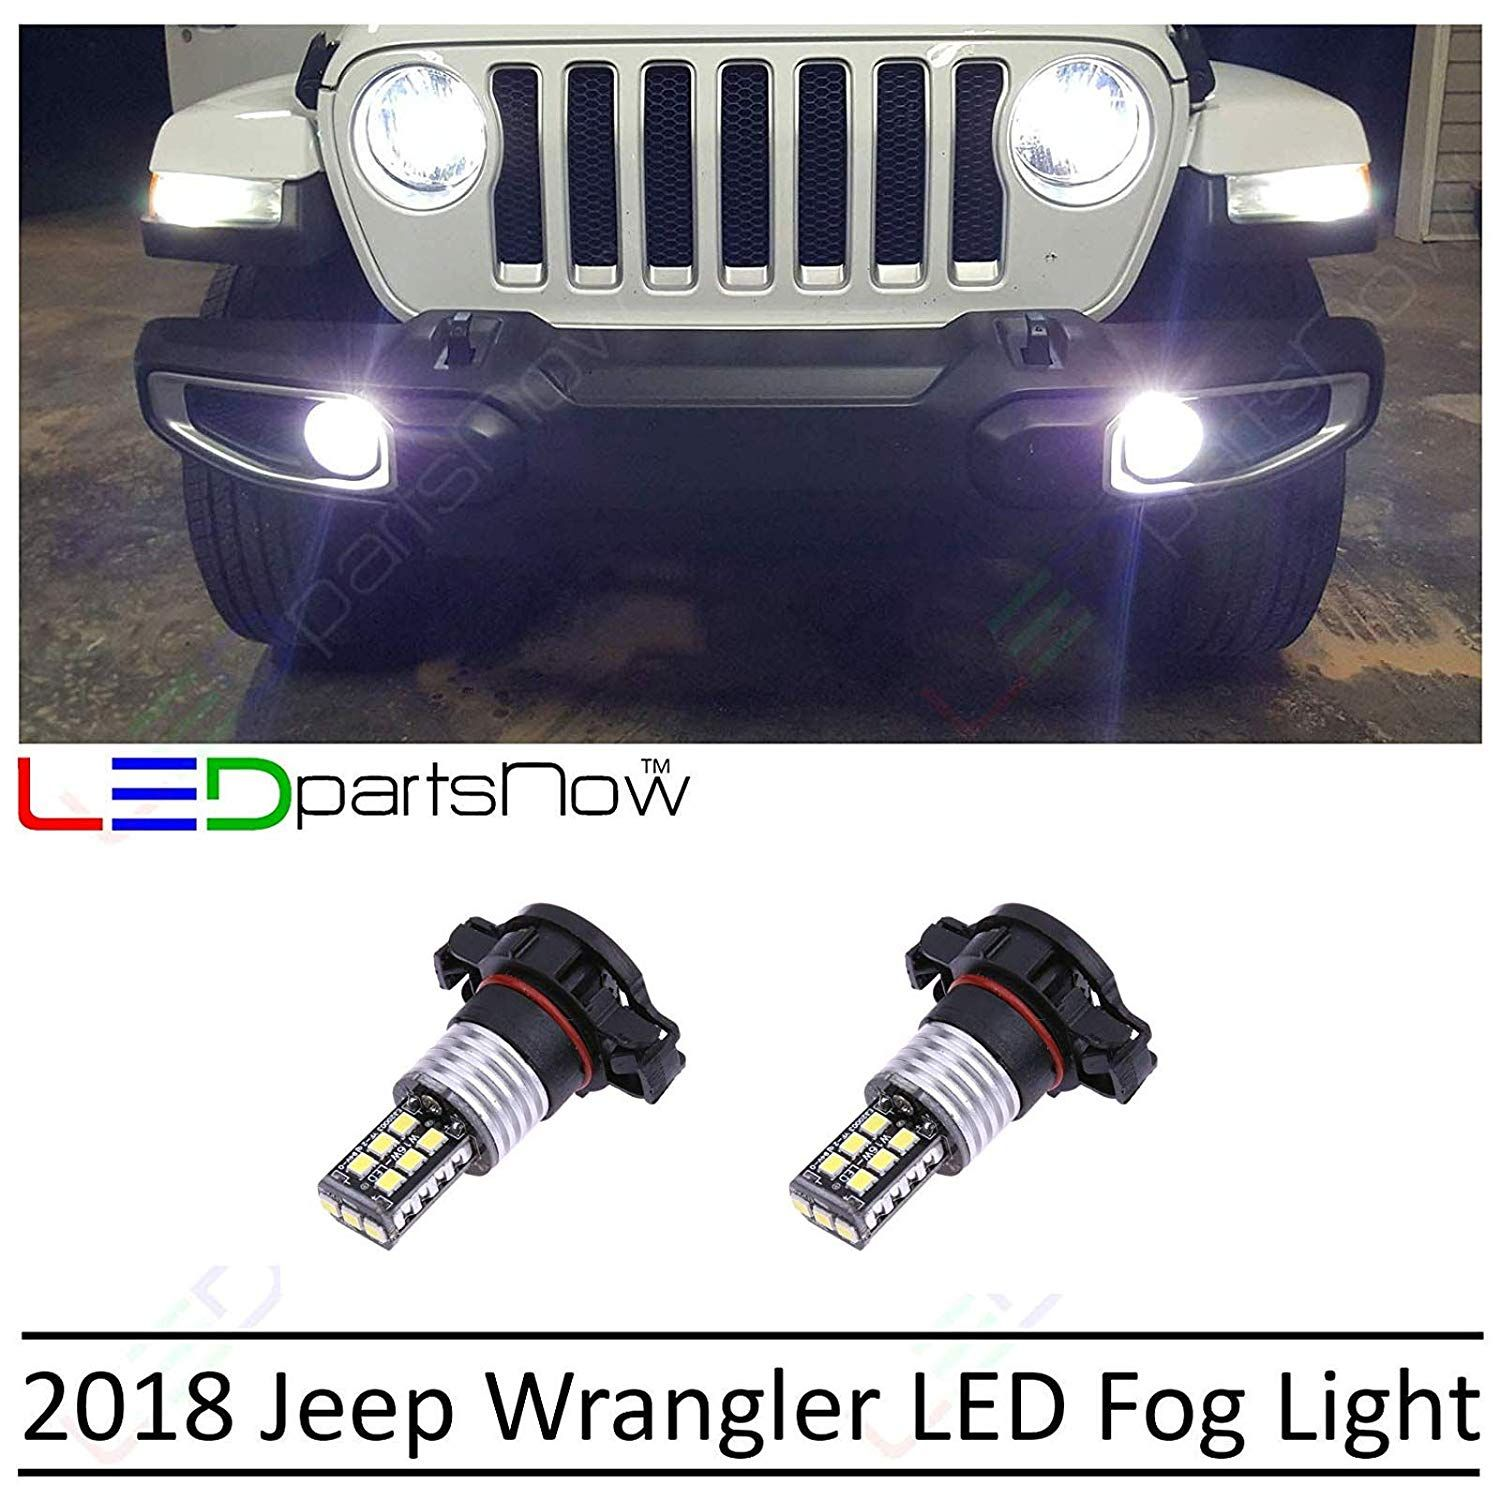 Amazon Com Ledpartsnow 2018 Jeep Wrangler Jl 5000k 5202 White Led